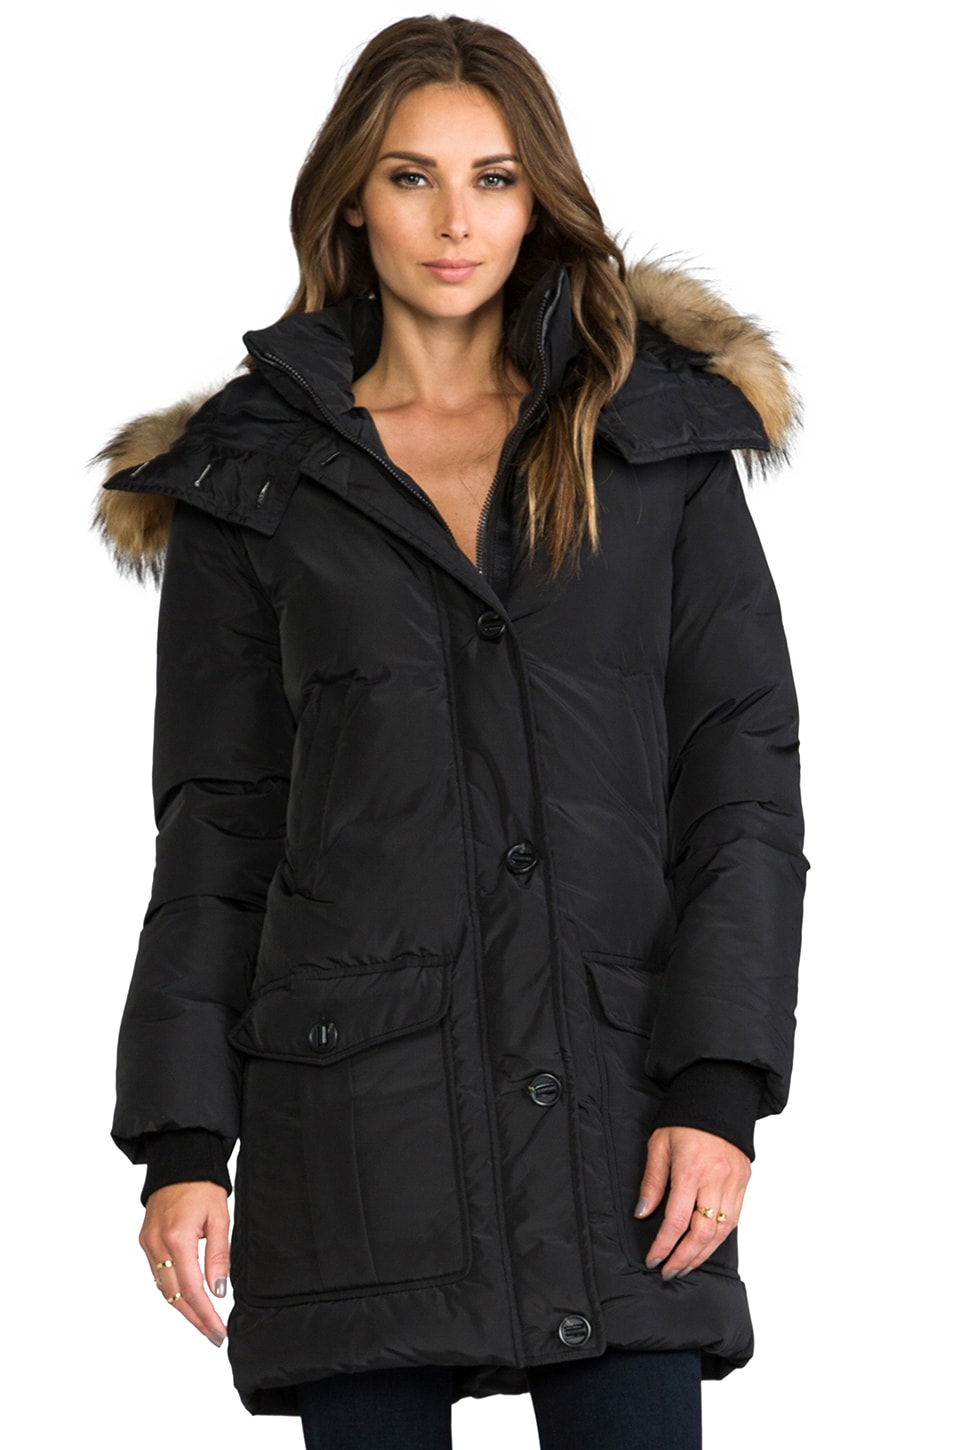 Mackage Chaska Lavish Down Jacket in Black